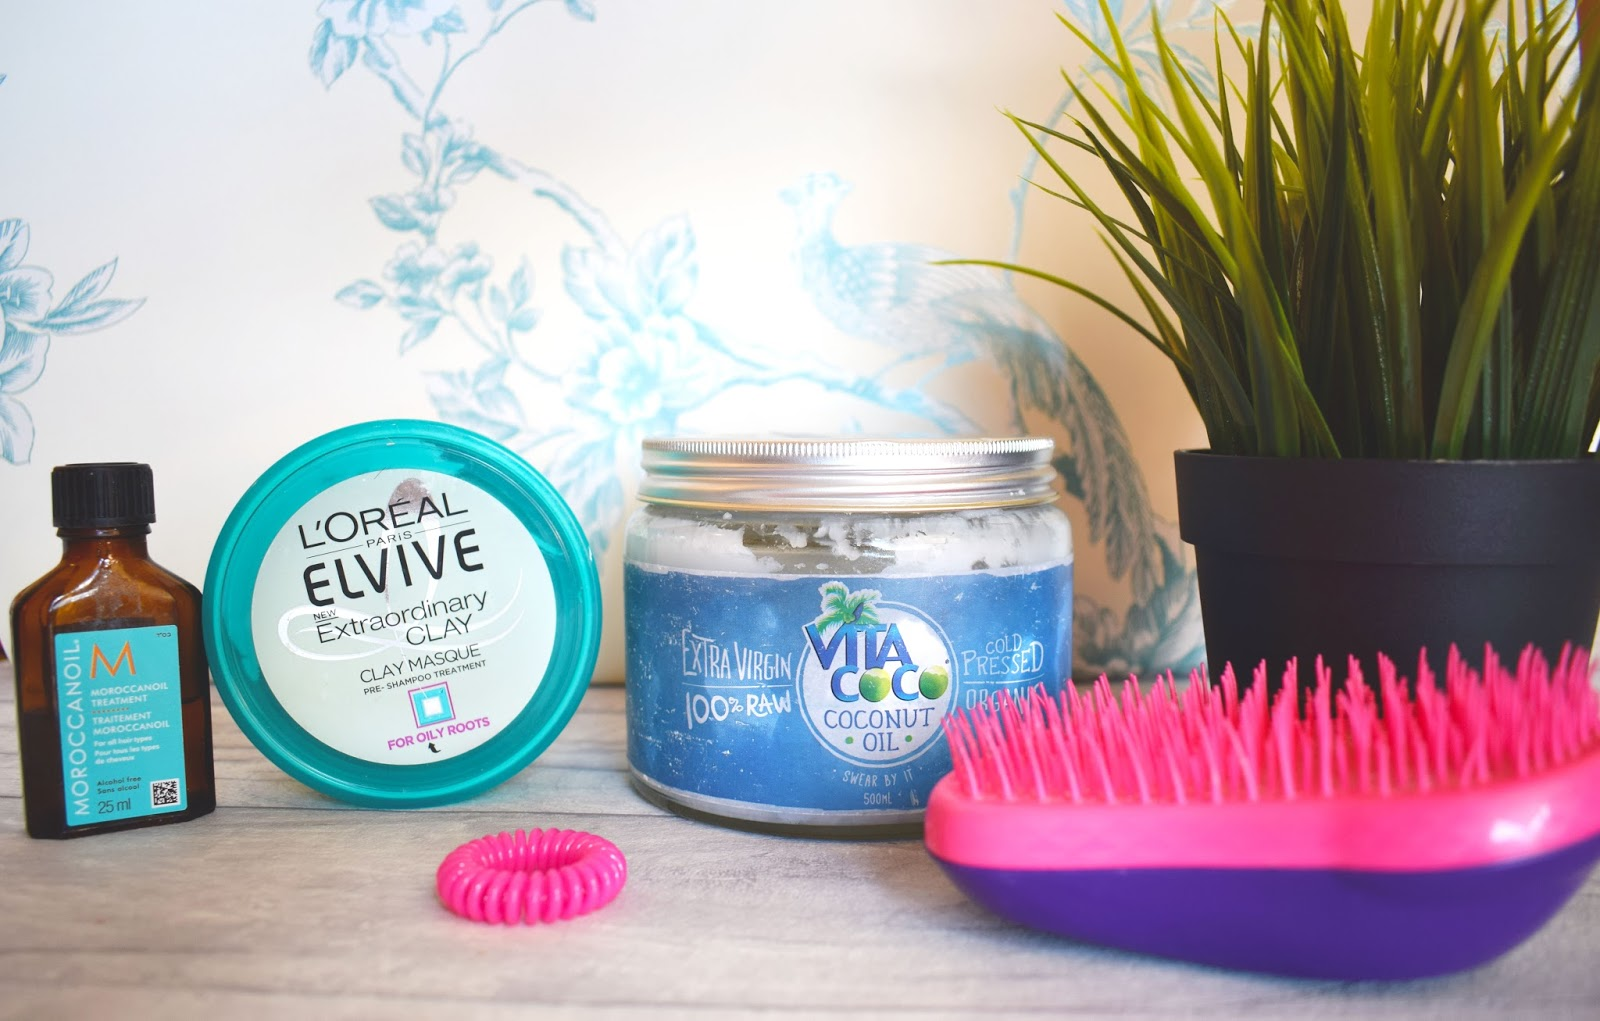 lebellelavie - Five hair products that I can't live without